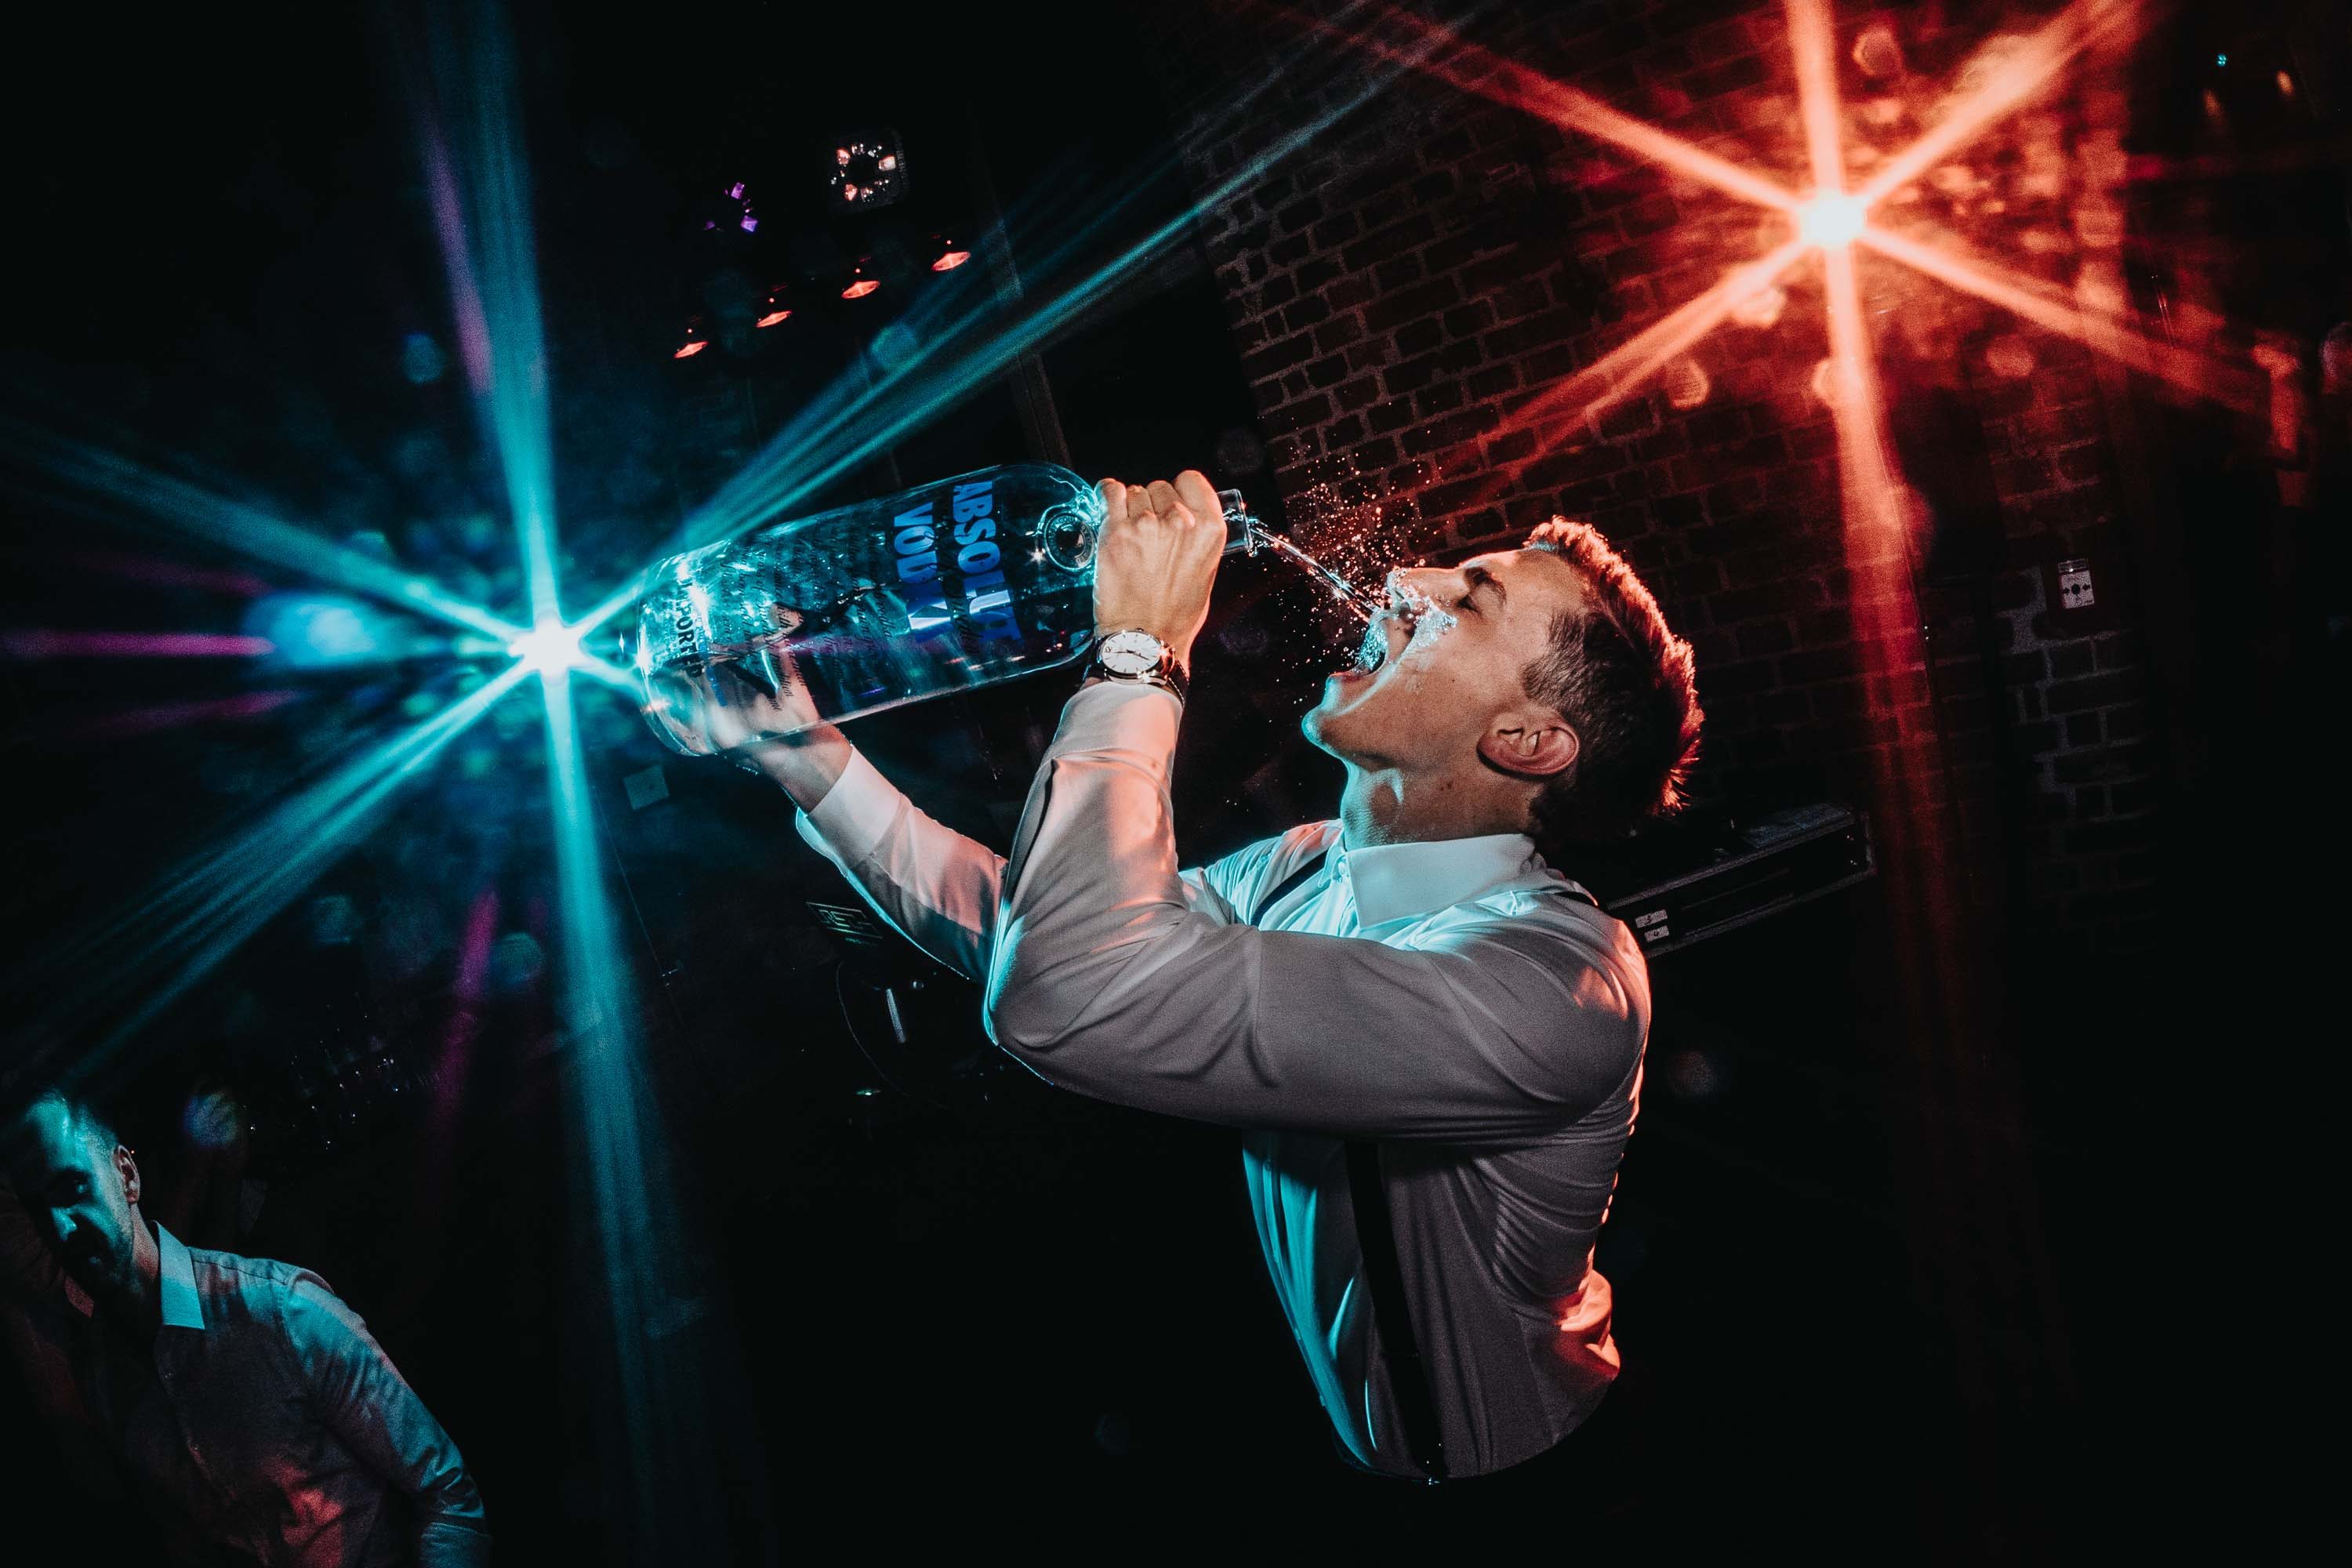 Guest drinks directly from gallon on Absolut Vodka,  photo by FineArt Weddings, Germany